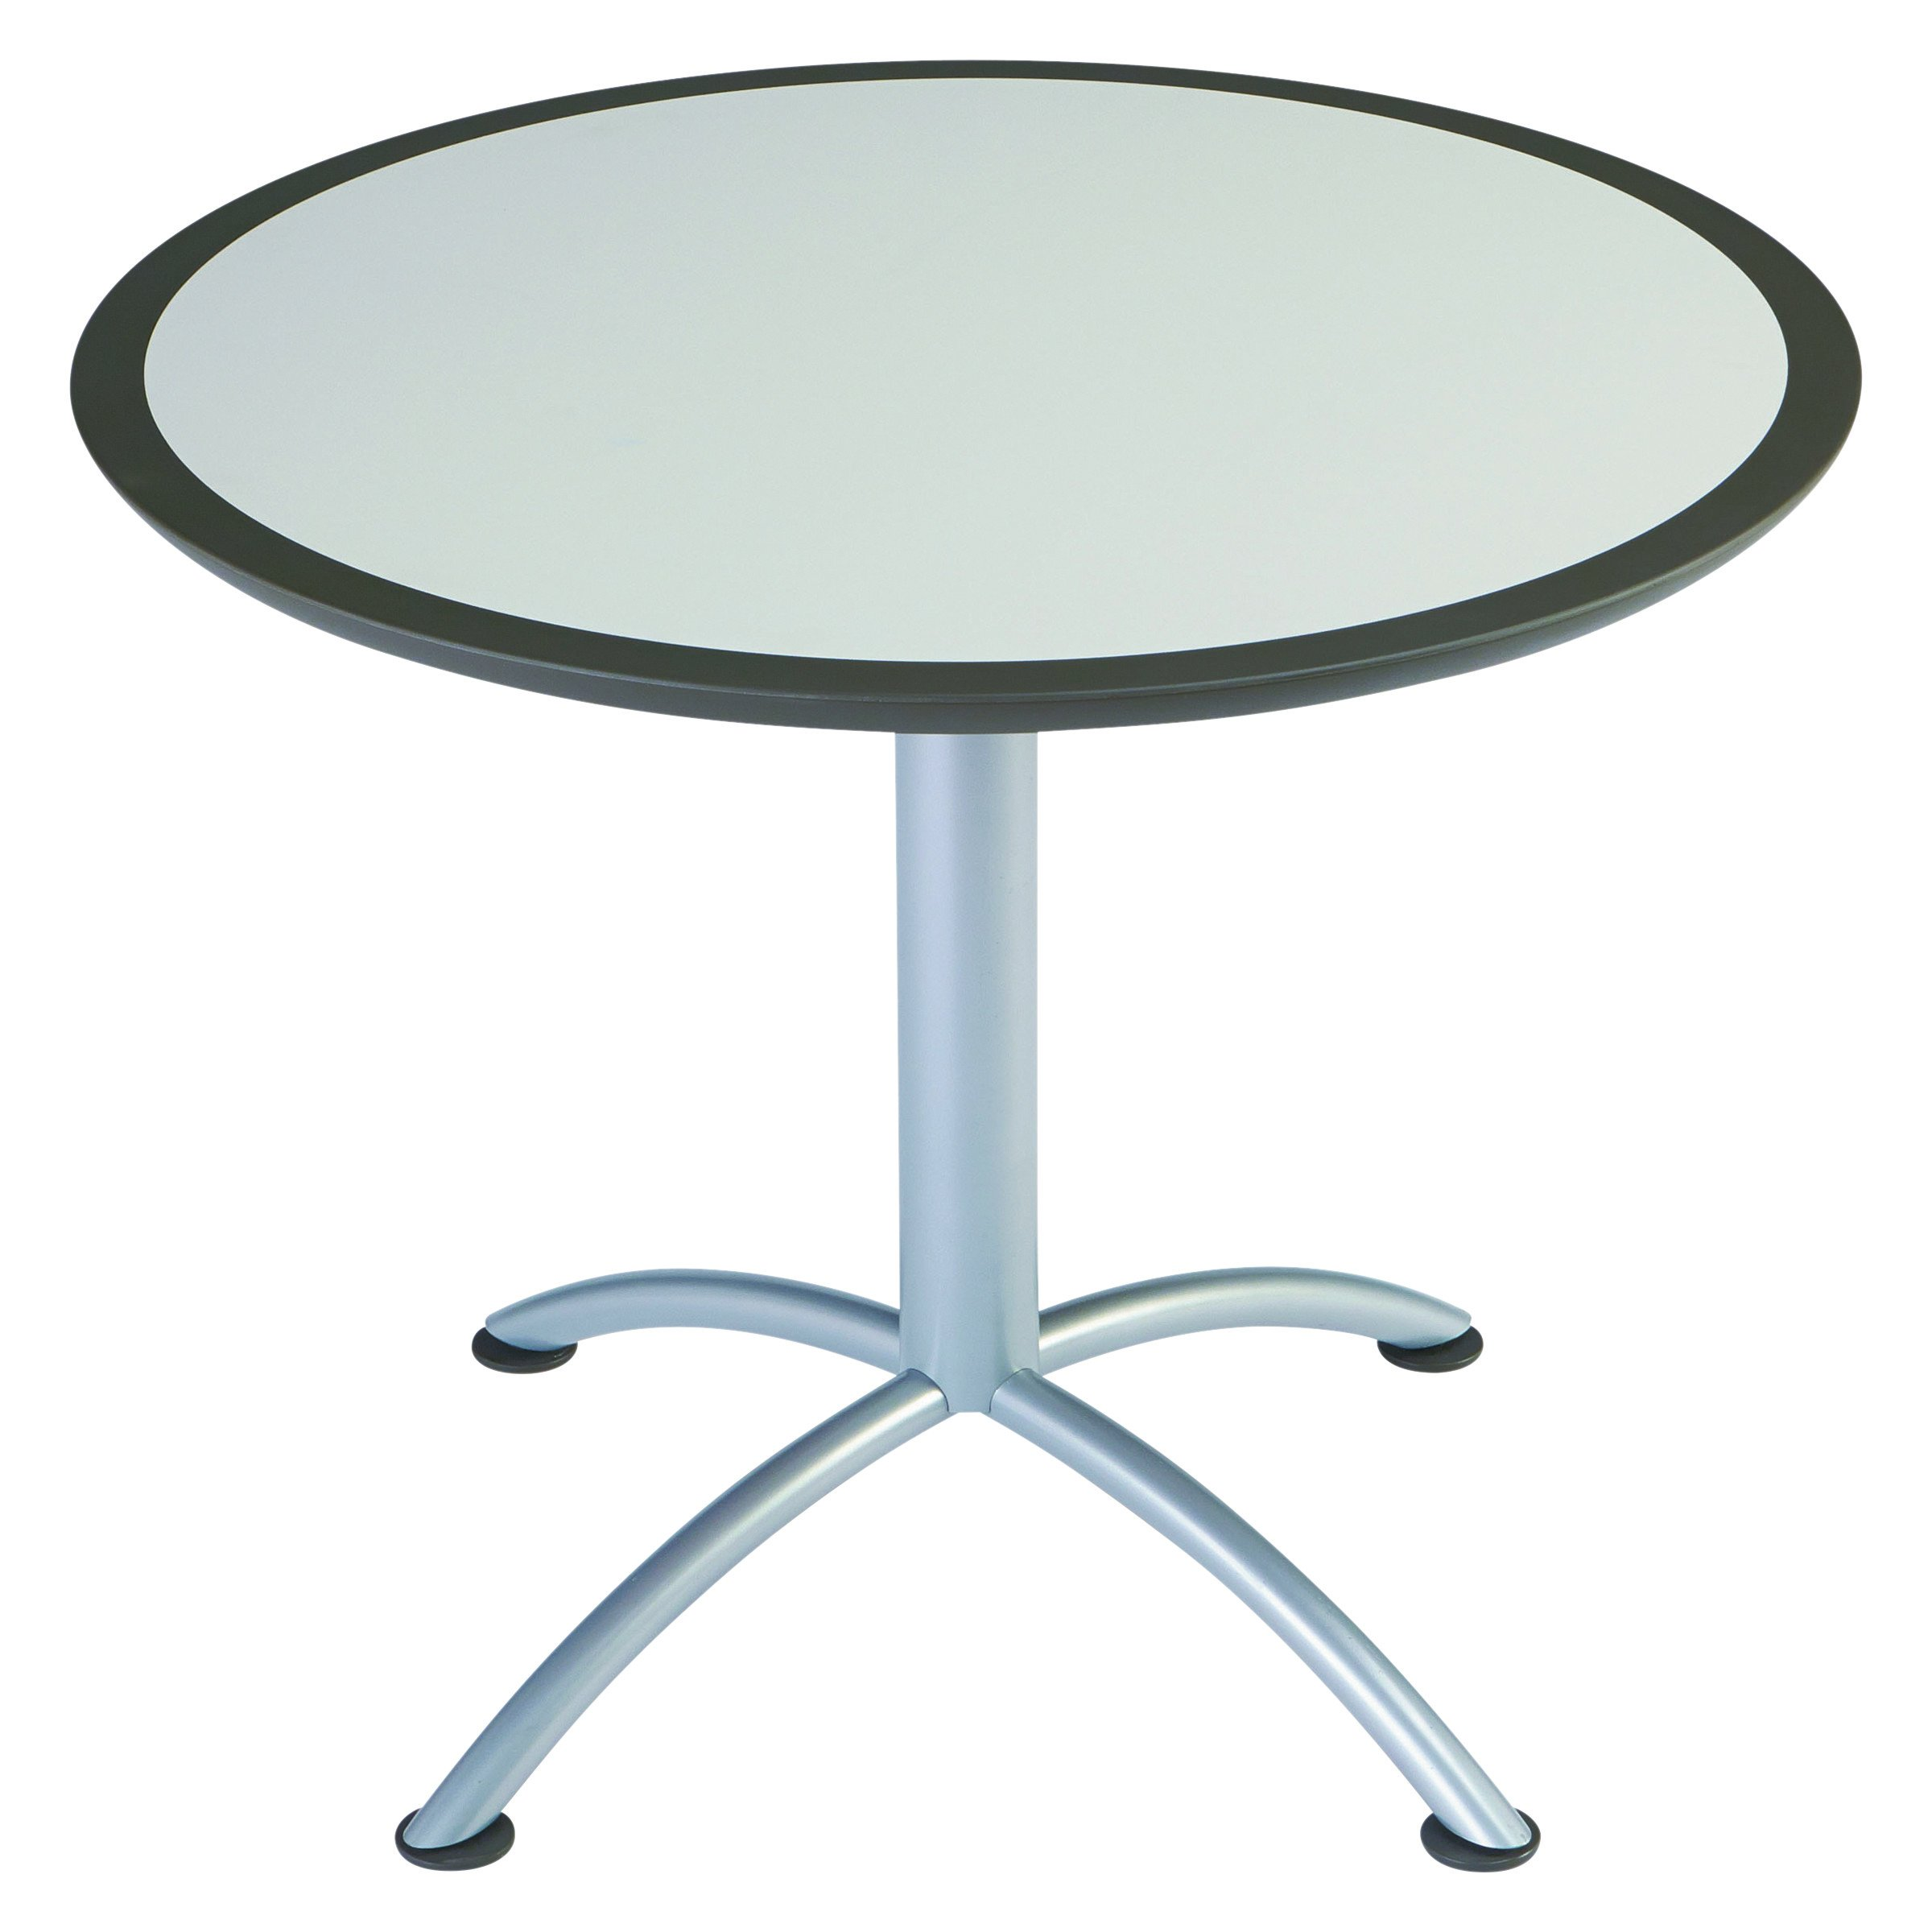 Iceberg 69815 iLand Meeting/Conferencing Table, Urethane Molded Edge, 36'' Round, 29'' Height, Gray, Silver Base